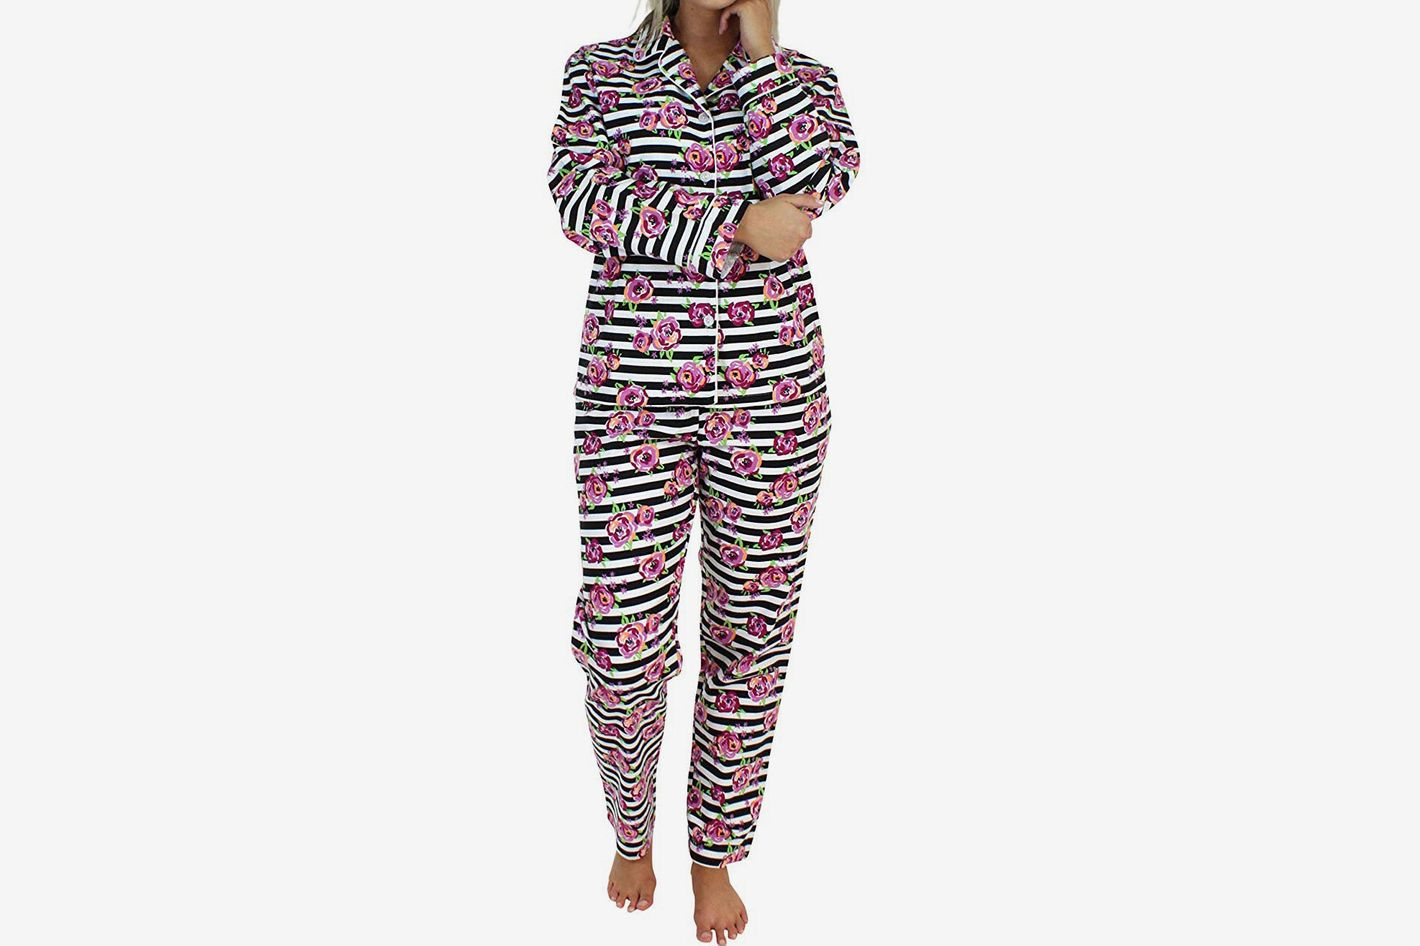 a38bd9b19cb1 PajamaMania Women s Sleepwear Flannel Long Sleeve Pajamas